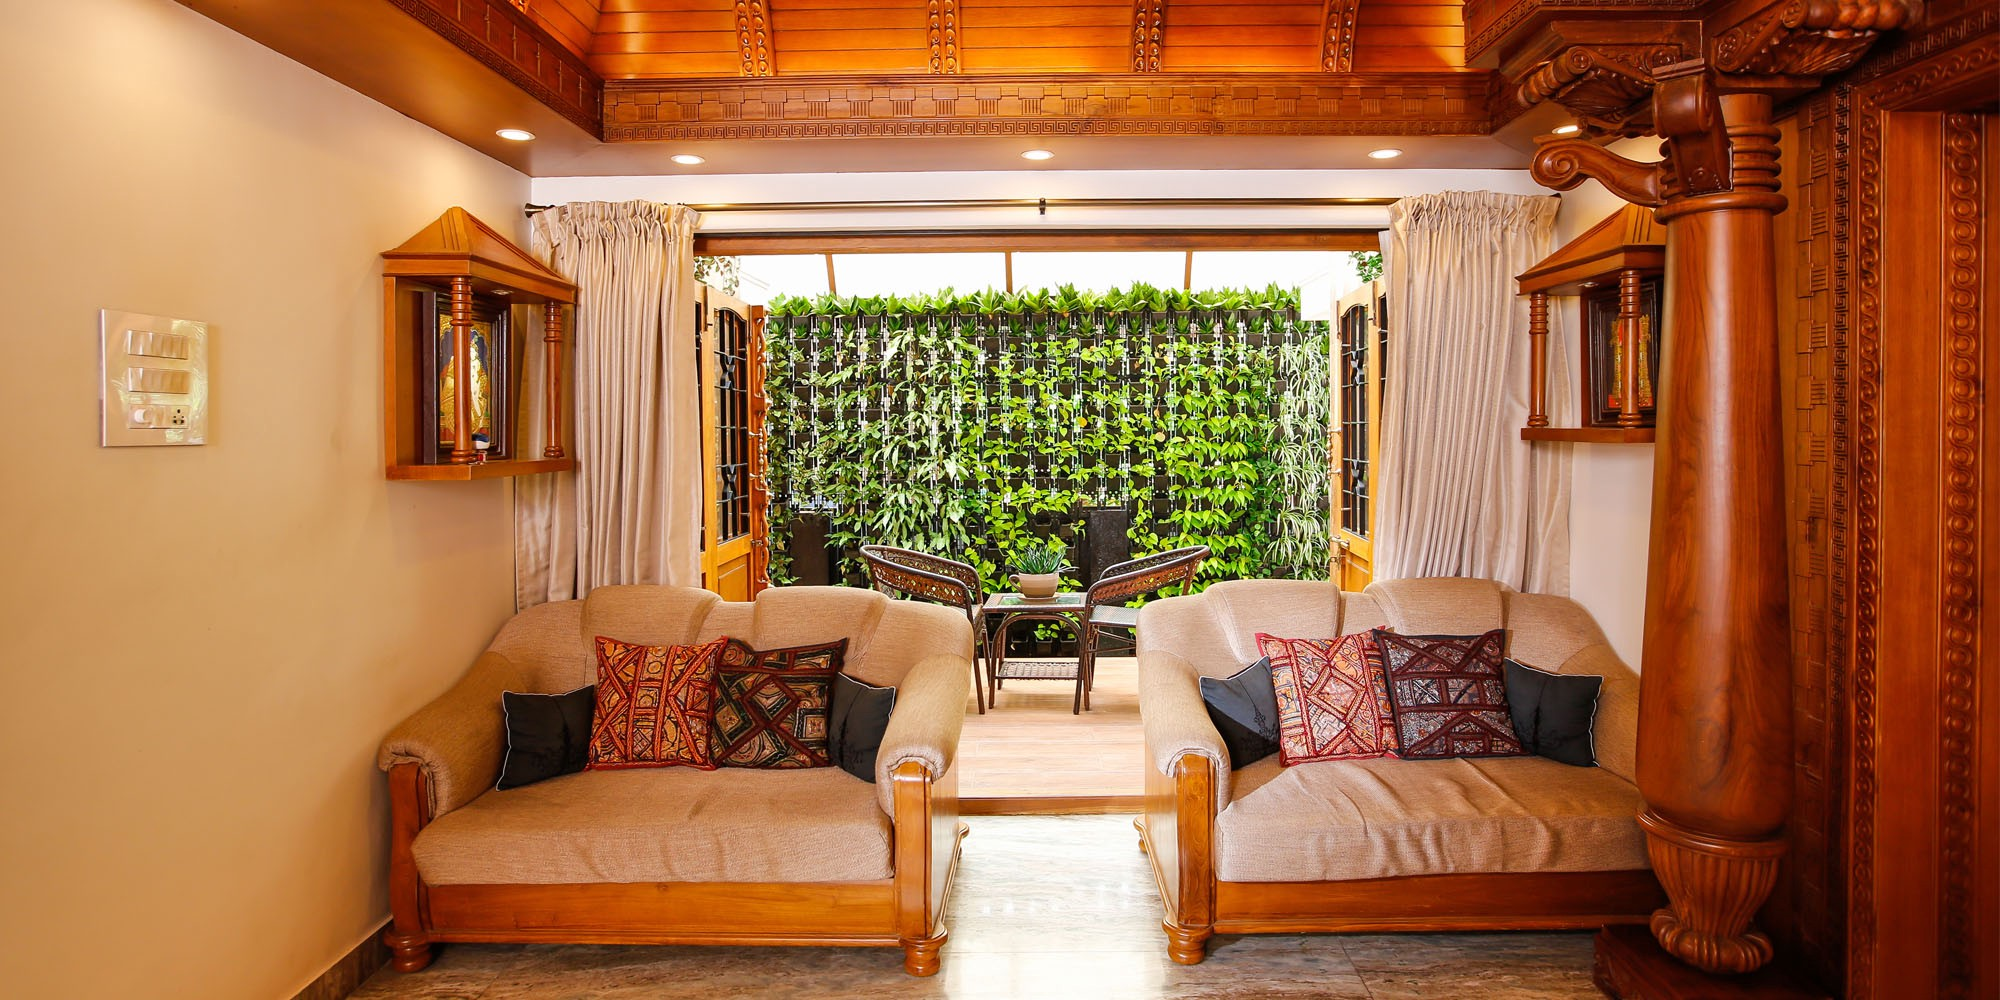 Tips To Introduce Eco Friendly Interiors In Kerala Style Home Designs By Monnaie Architects Interiors Medium